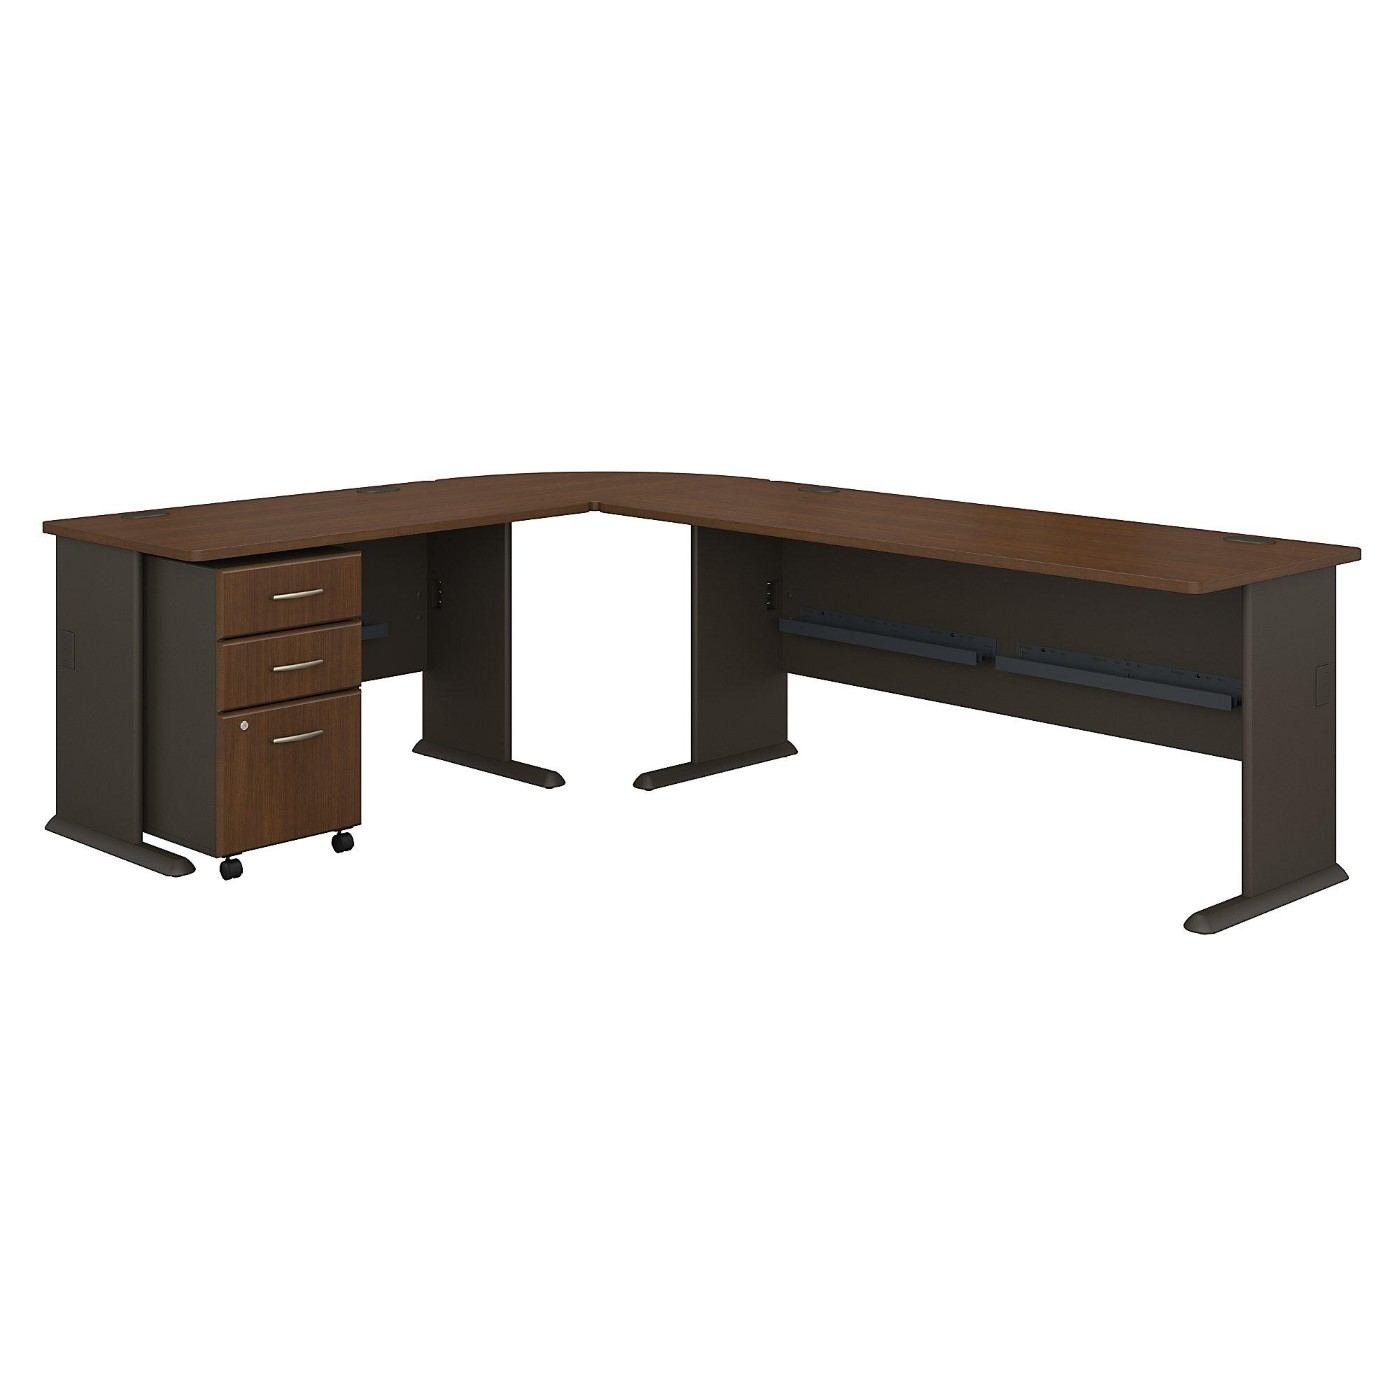 <font color=#c60><b>BUSH BUSINESS FURNITURE SERIES A 99W X 75D L SHAPED DESK WITH MOBILE FILE CABINET. FREE SHIPPING</font></b>